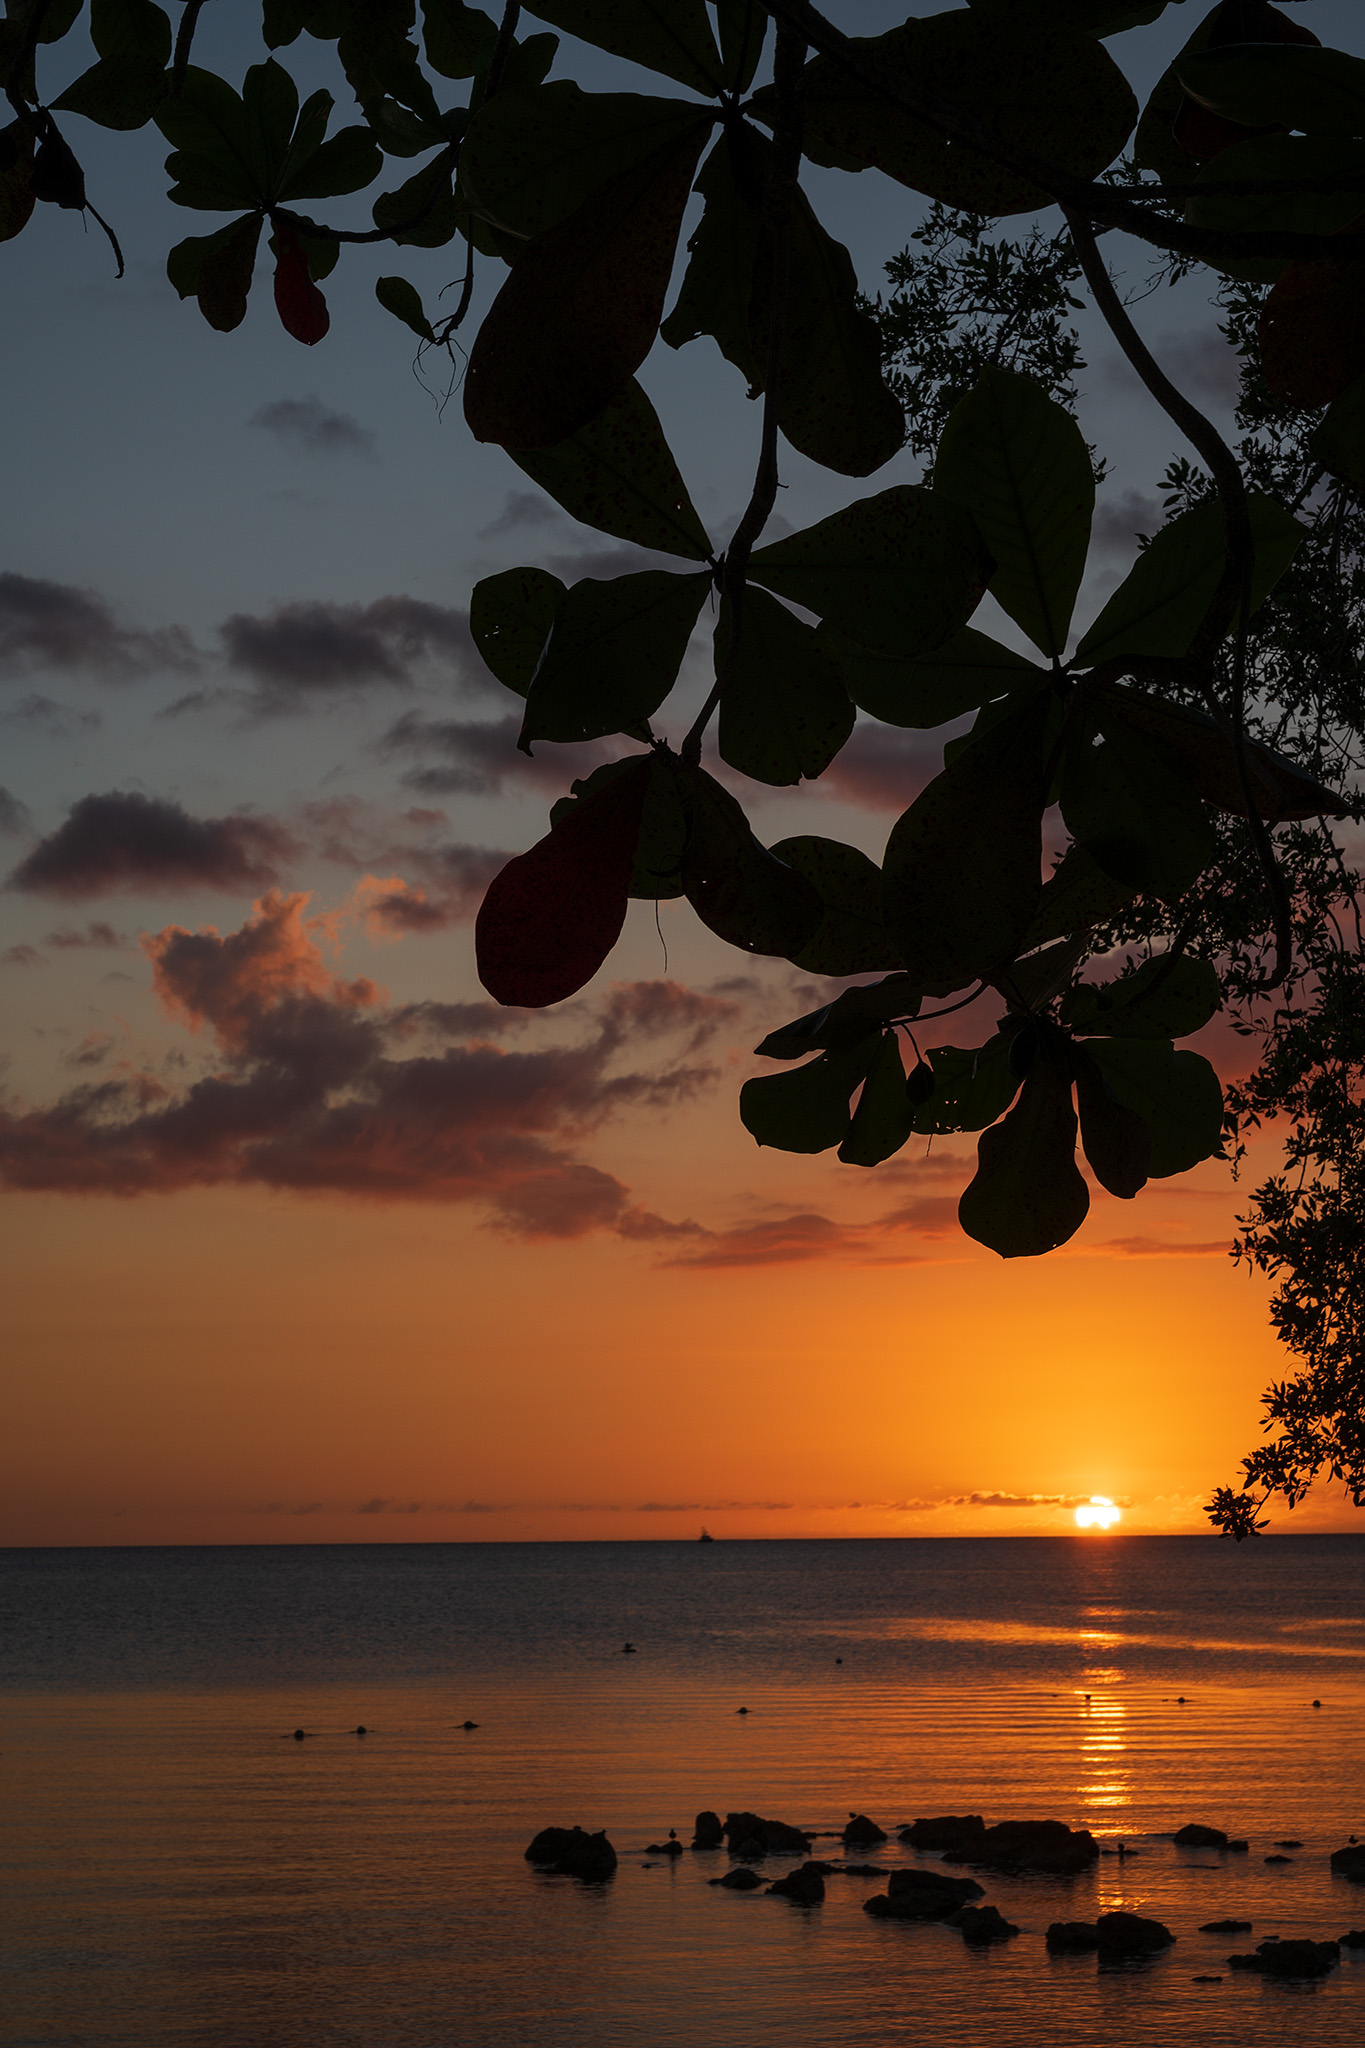 Negril 7 Mile Beach is known for it's incredible western view of the sunset.